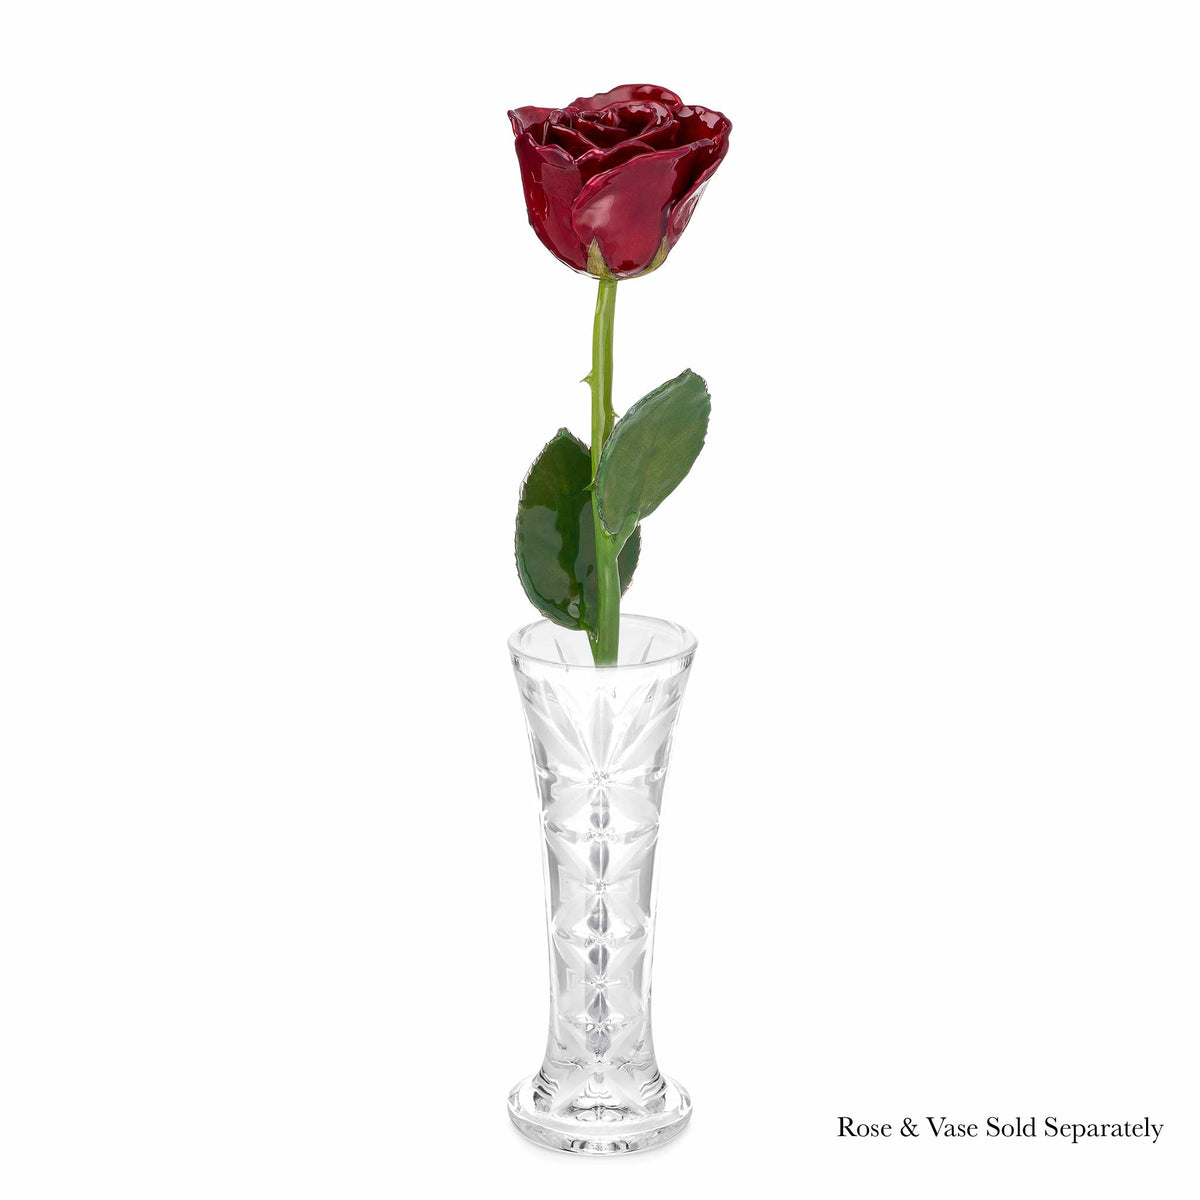 Natural (Green Stem) Forever Rose with Deep Red, Burgundy Colored Petals. View of Stem, Leaves, and Rose Petals. This a Forever Rose without any gold or other precious metals on it. shown with optional crystal vase